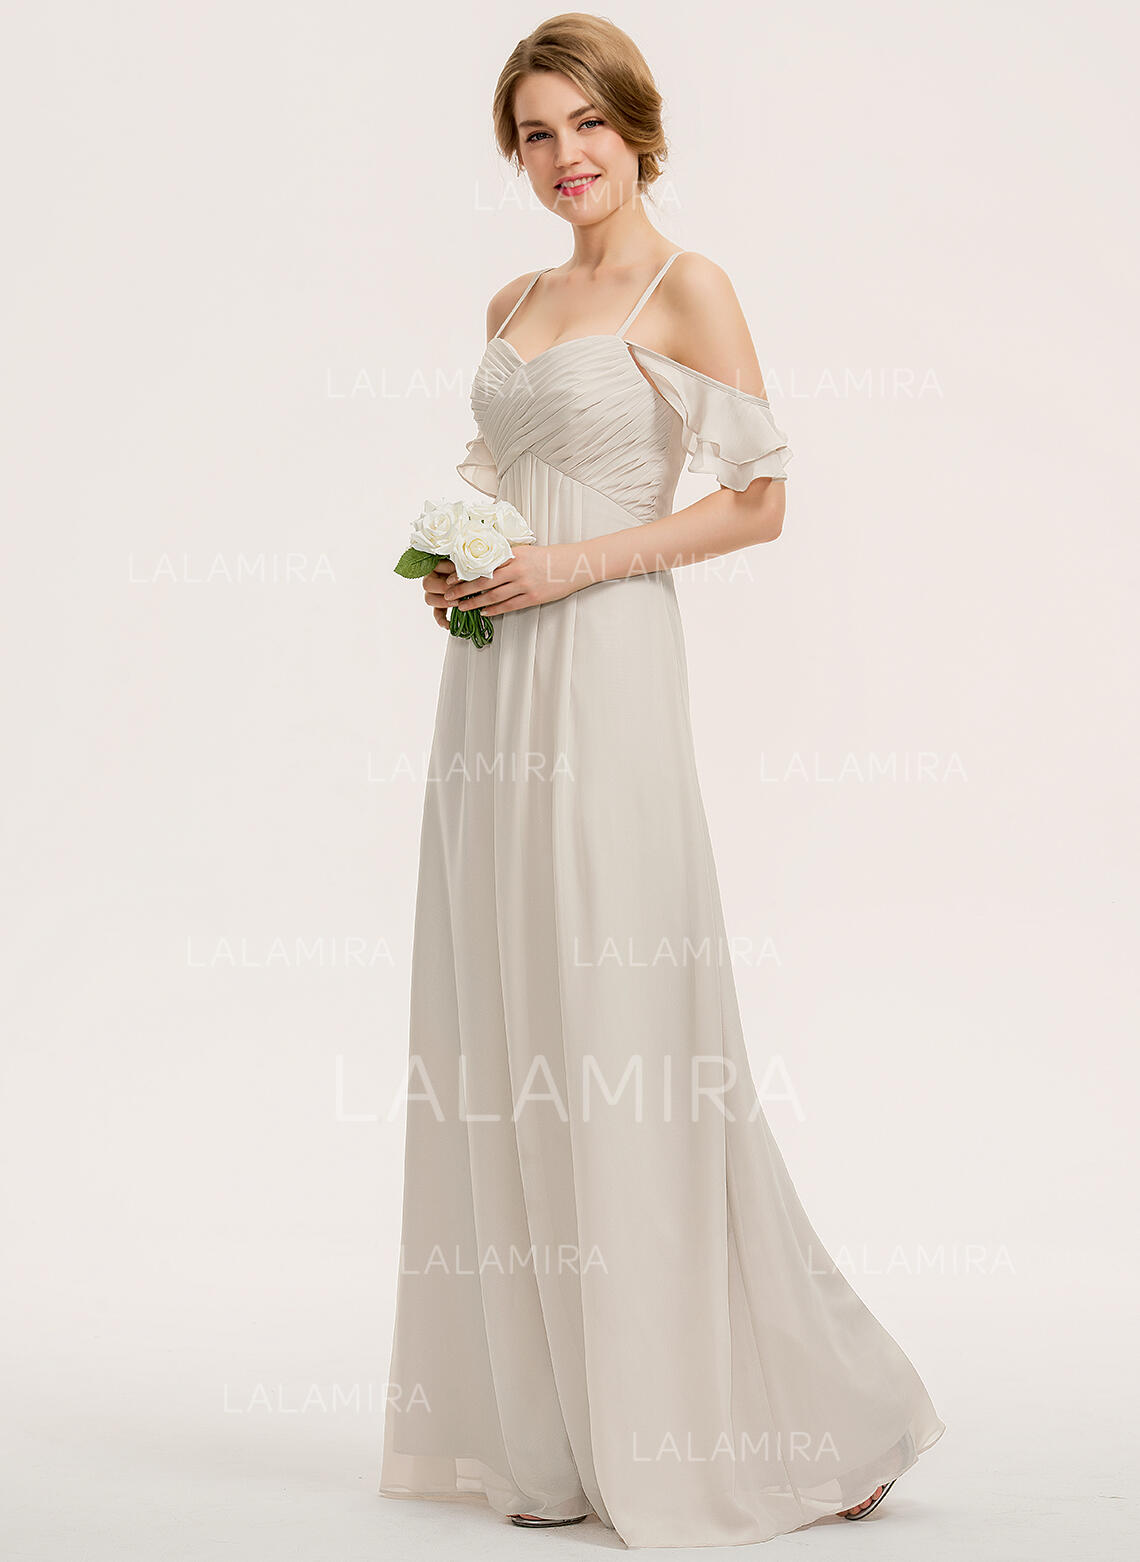 adult and child bridesmaid dresses